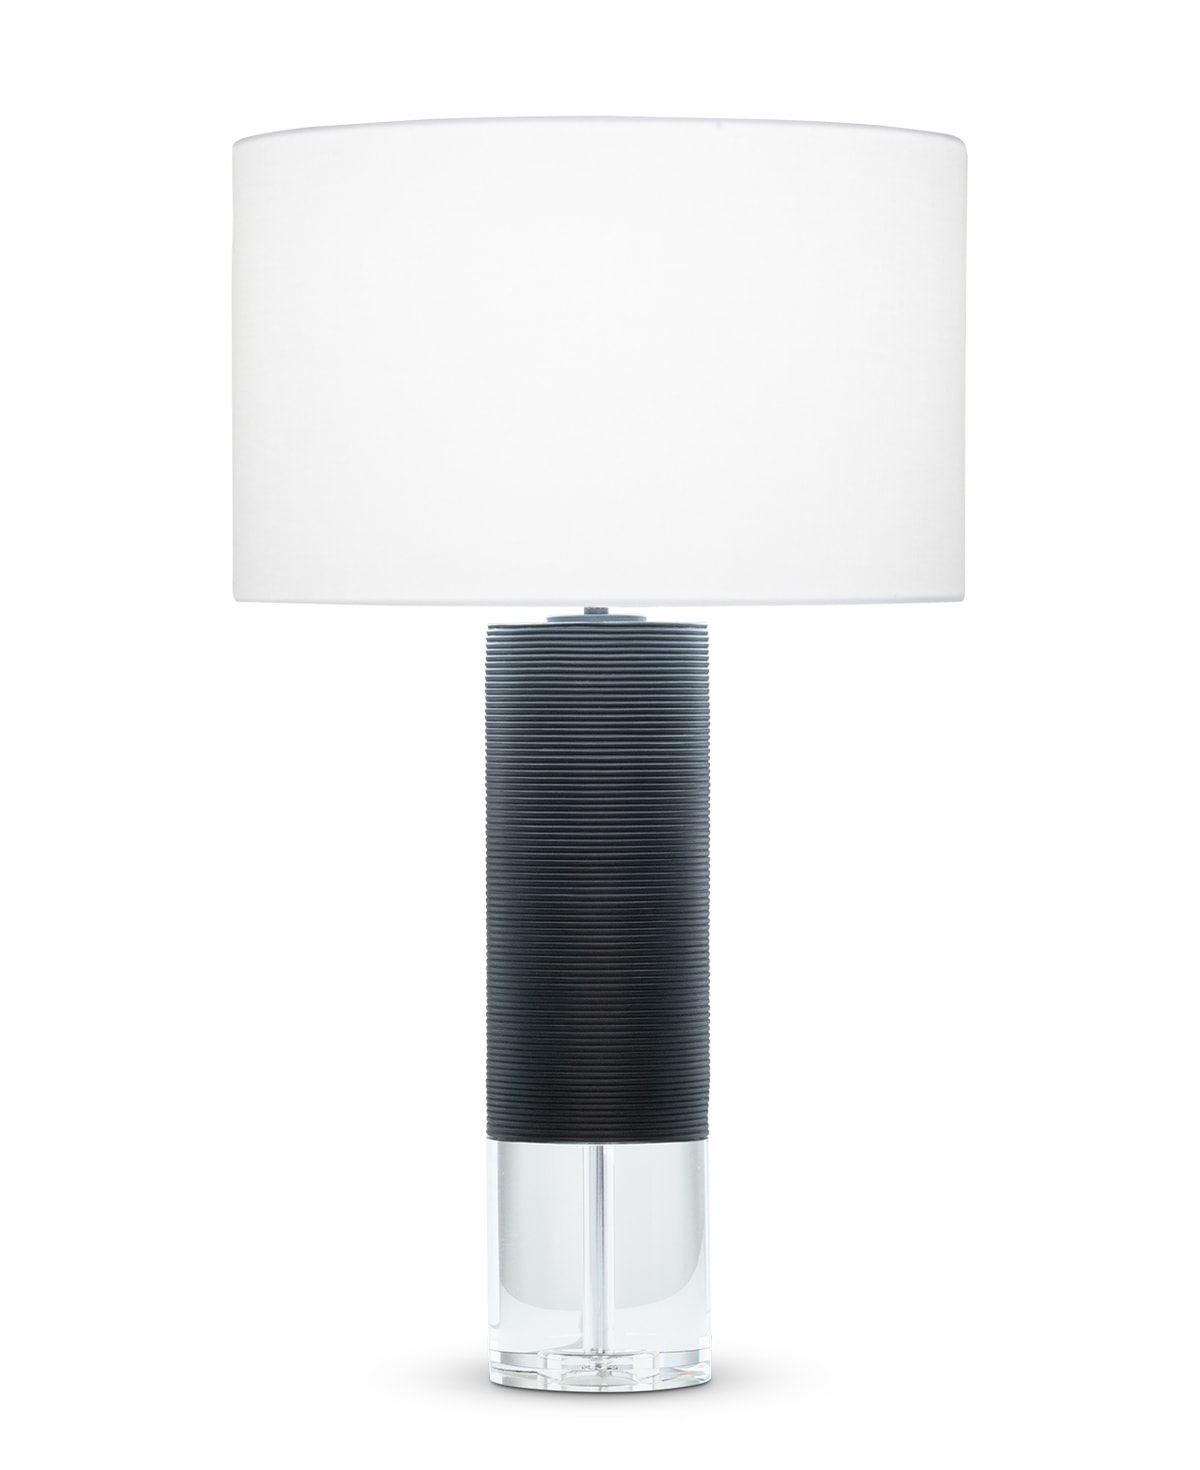 FlowDecor Locke Table Lamp in resin with black matte finish and finely ribbed surface and crystal and white linen drum shade (# 4521)